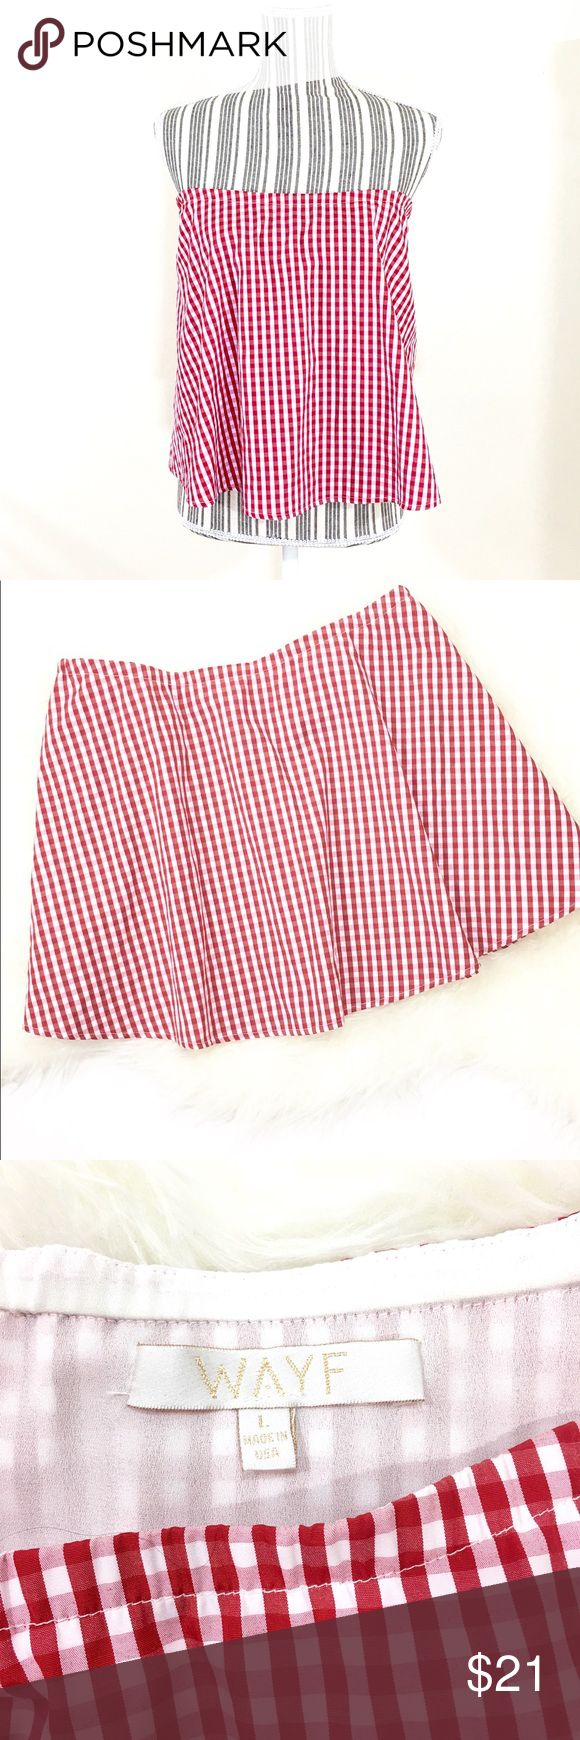 """👑WAYF Gingham Check Strapless Top Keep it simple with this super cute strapless top. Wear it under a denim jacket or pair it with your favorite white jeans or denim shorts. Stay crisp and cool no matter how high the temperature. 50% Polyester/50% Cotton shell. Fully lined in 50% Polyester. Length 15"""". Worn once in perfect condition. WAYF Tops"""